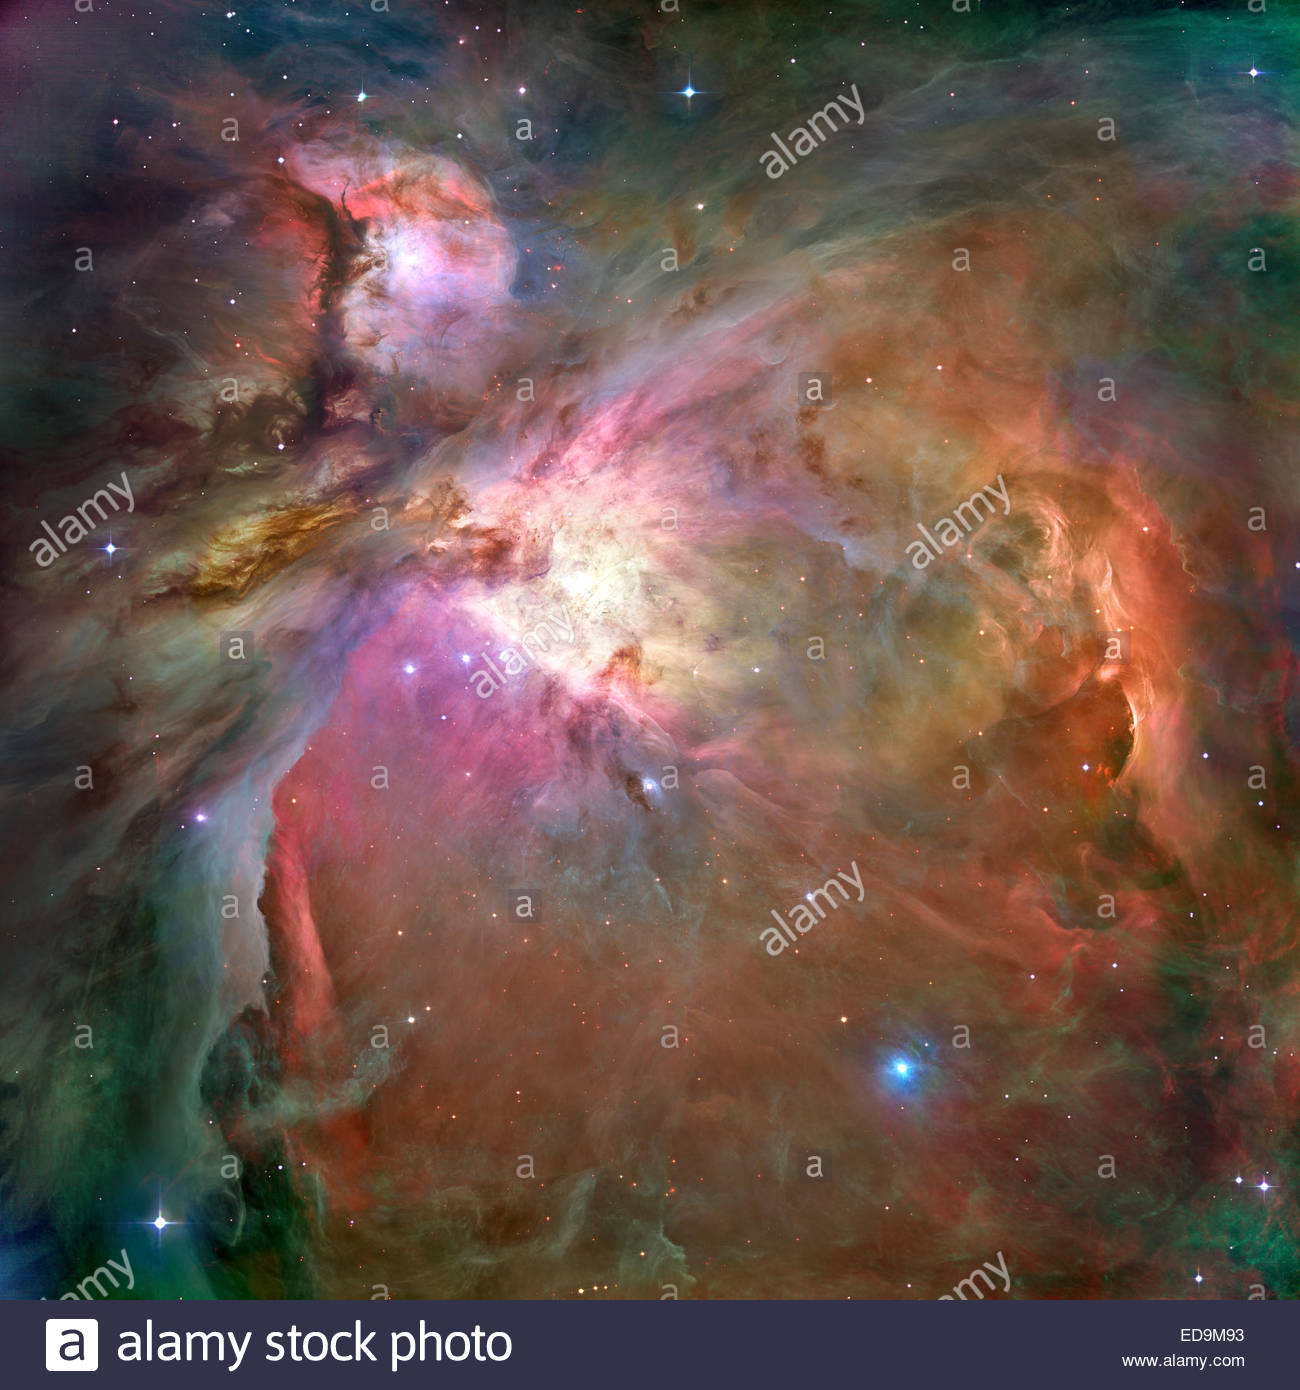 M42, NGC 1976, Emission Nebula in Orion. Credit: Original image by ESA/NASA, processing & colouring raw data - Stock Image